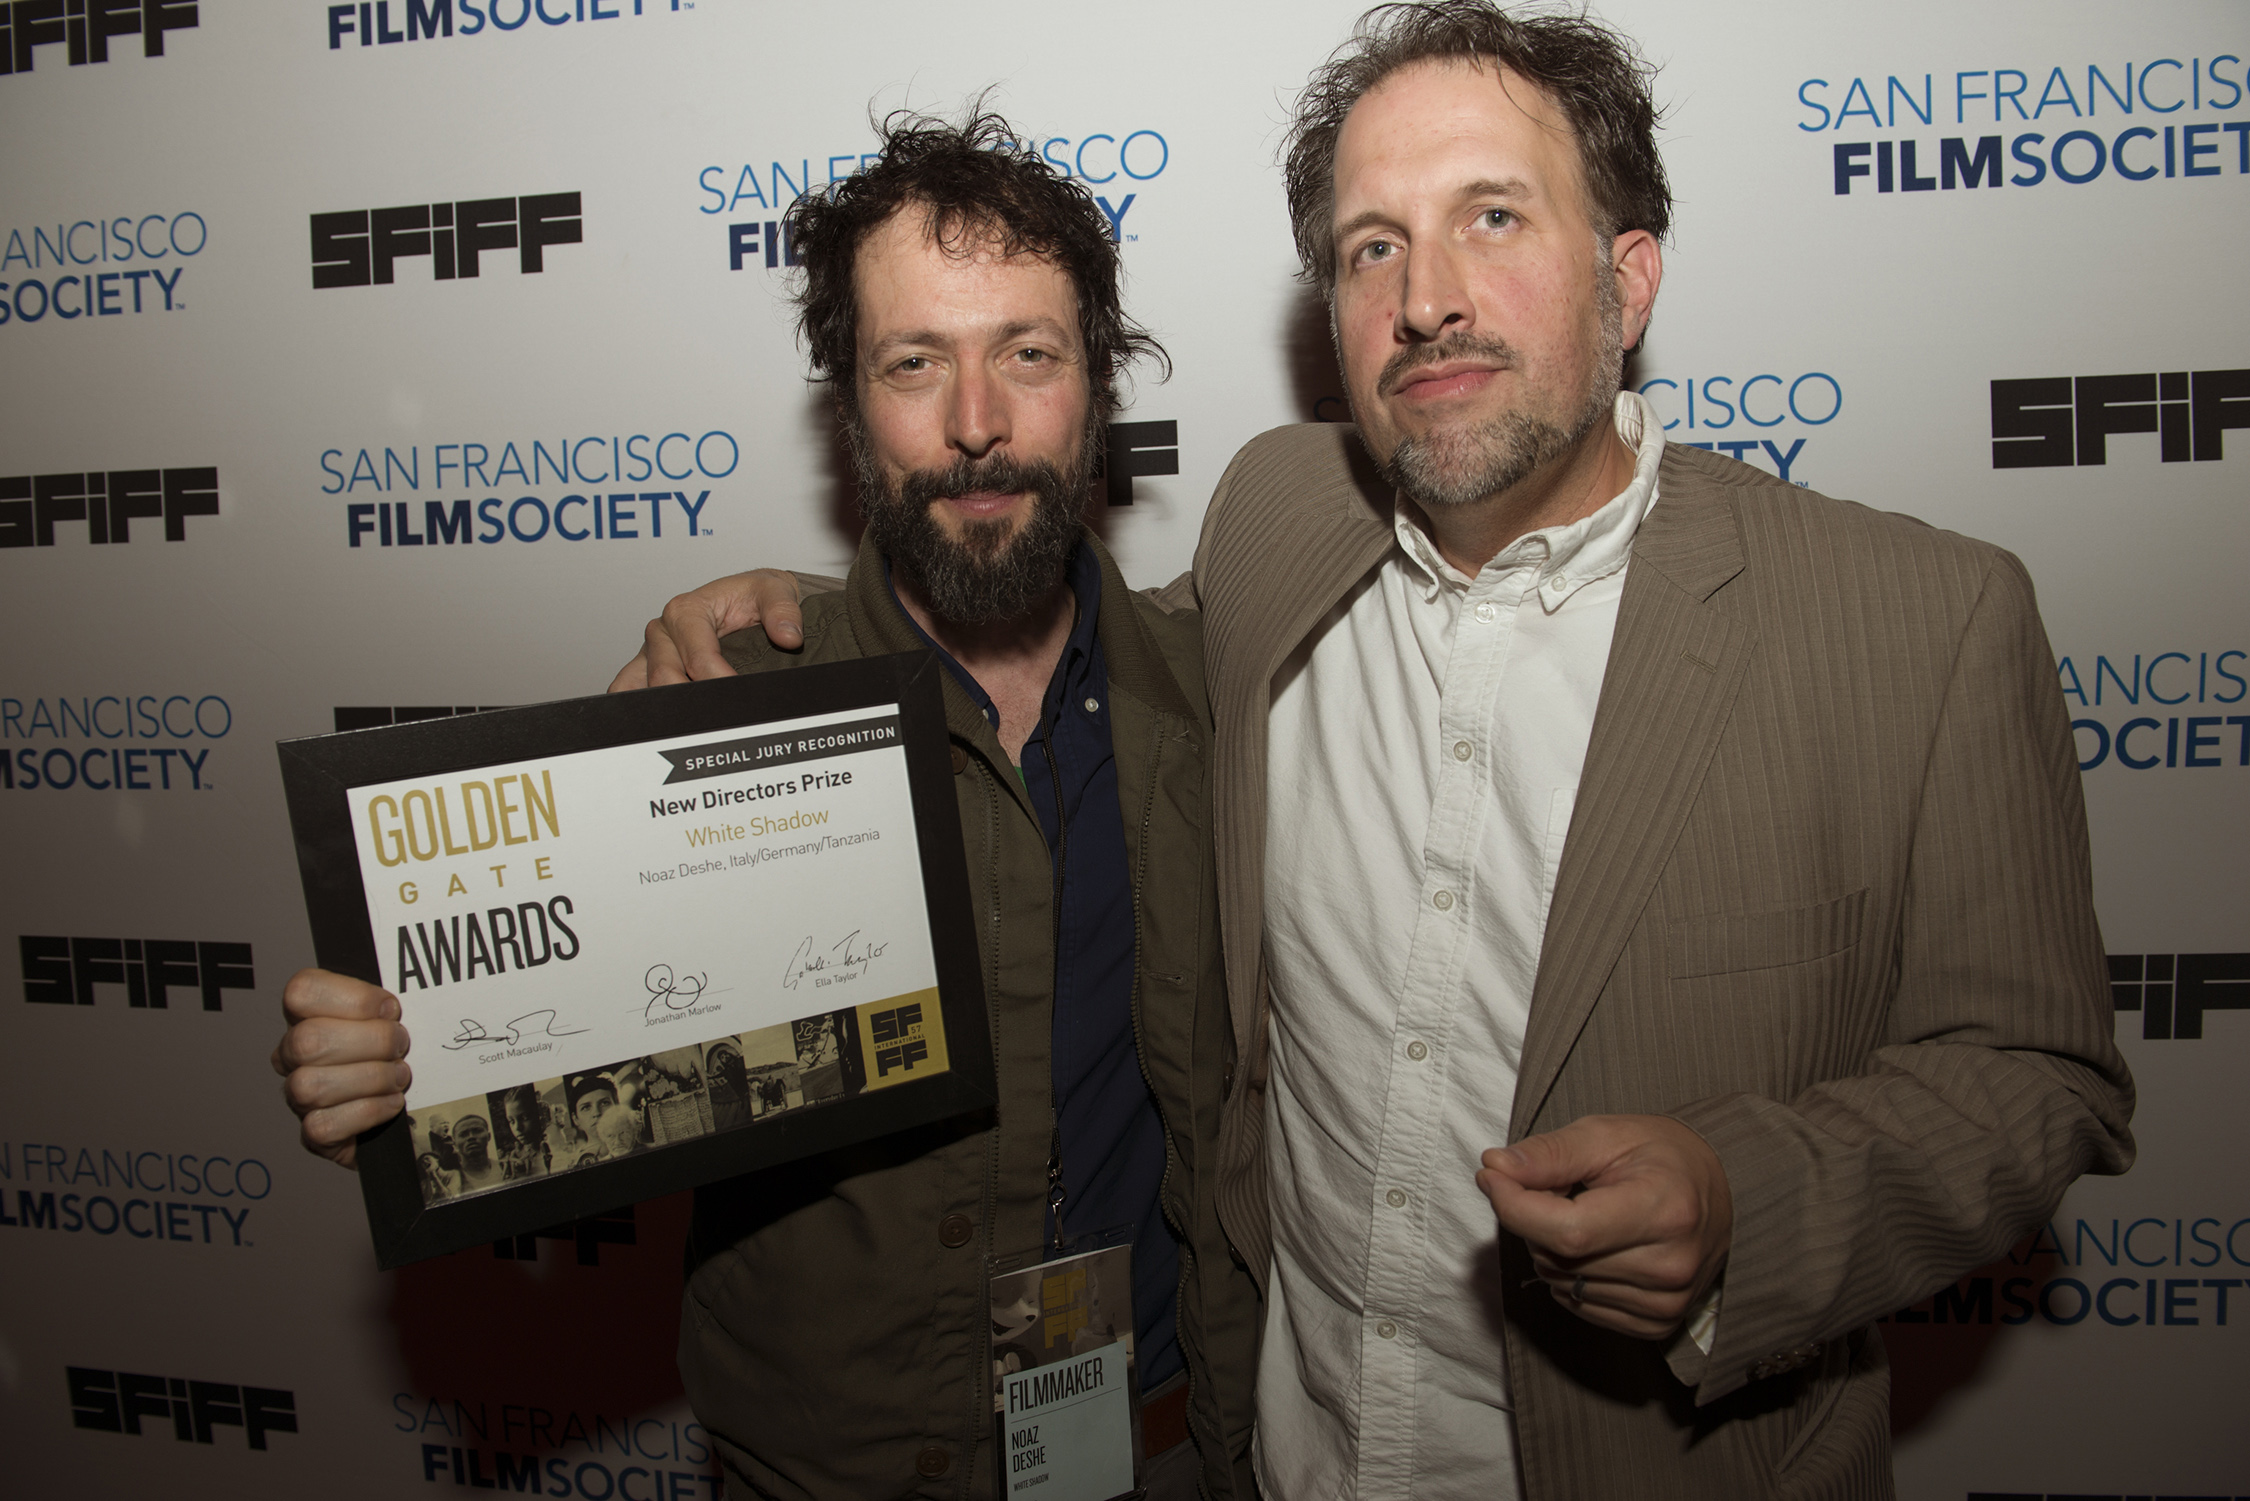 Noaz Deshe, director of WHITE SHADOW, and Jonathan Marlow